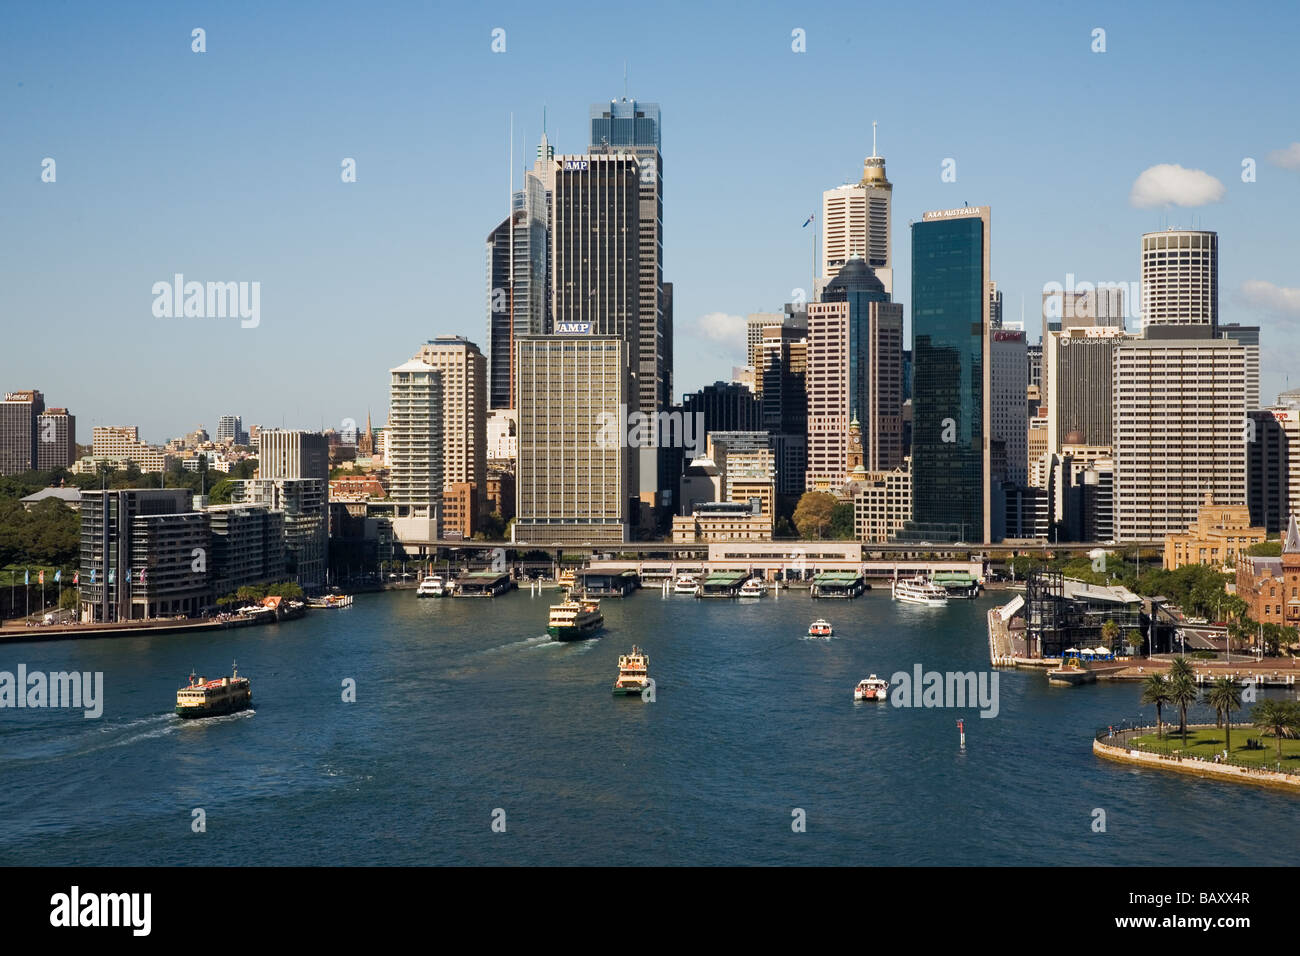 Boat traffic in busy Circular Quay the ferry terminus and rail stop with the high rises of the CBD beyond in Sydney - Stock Image